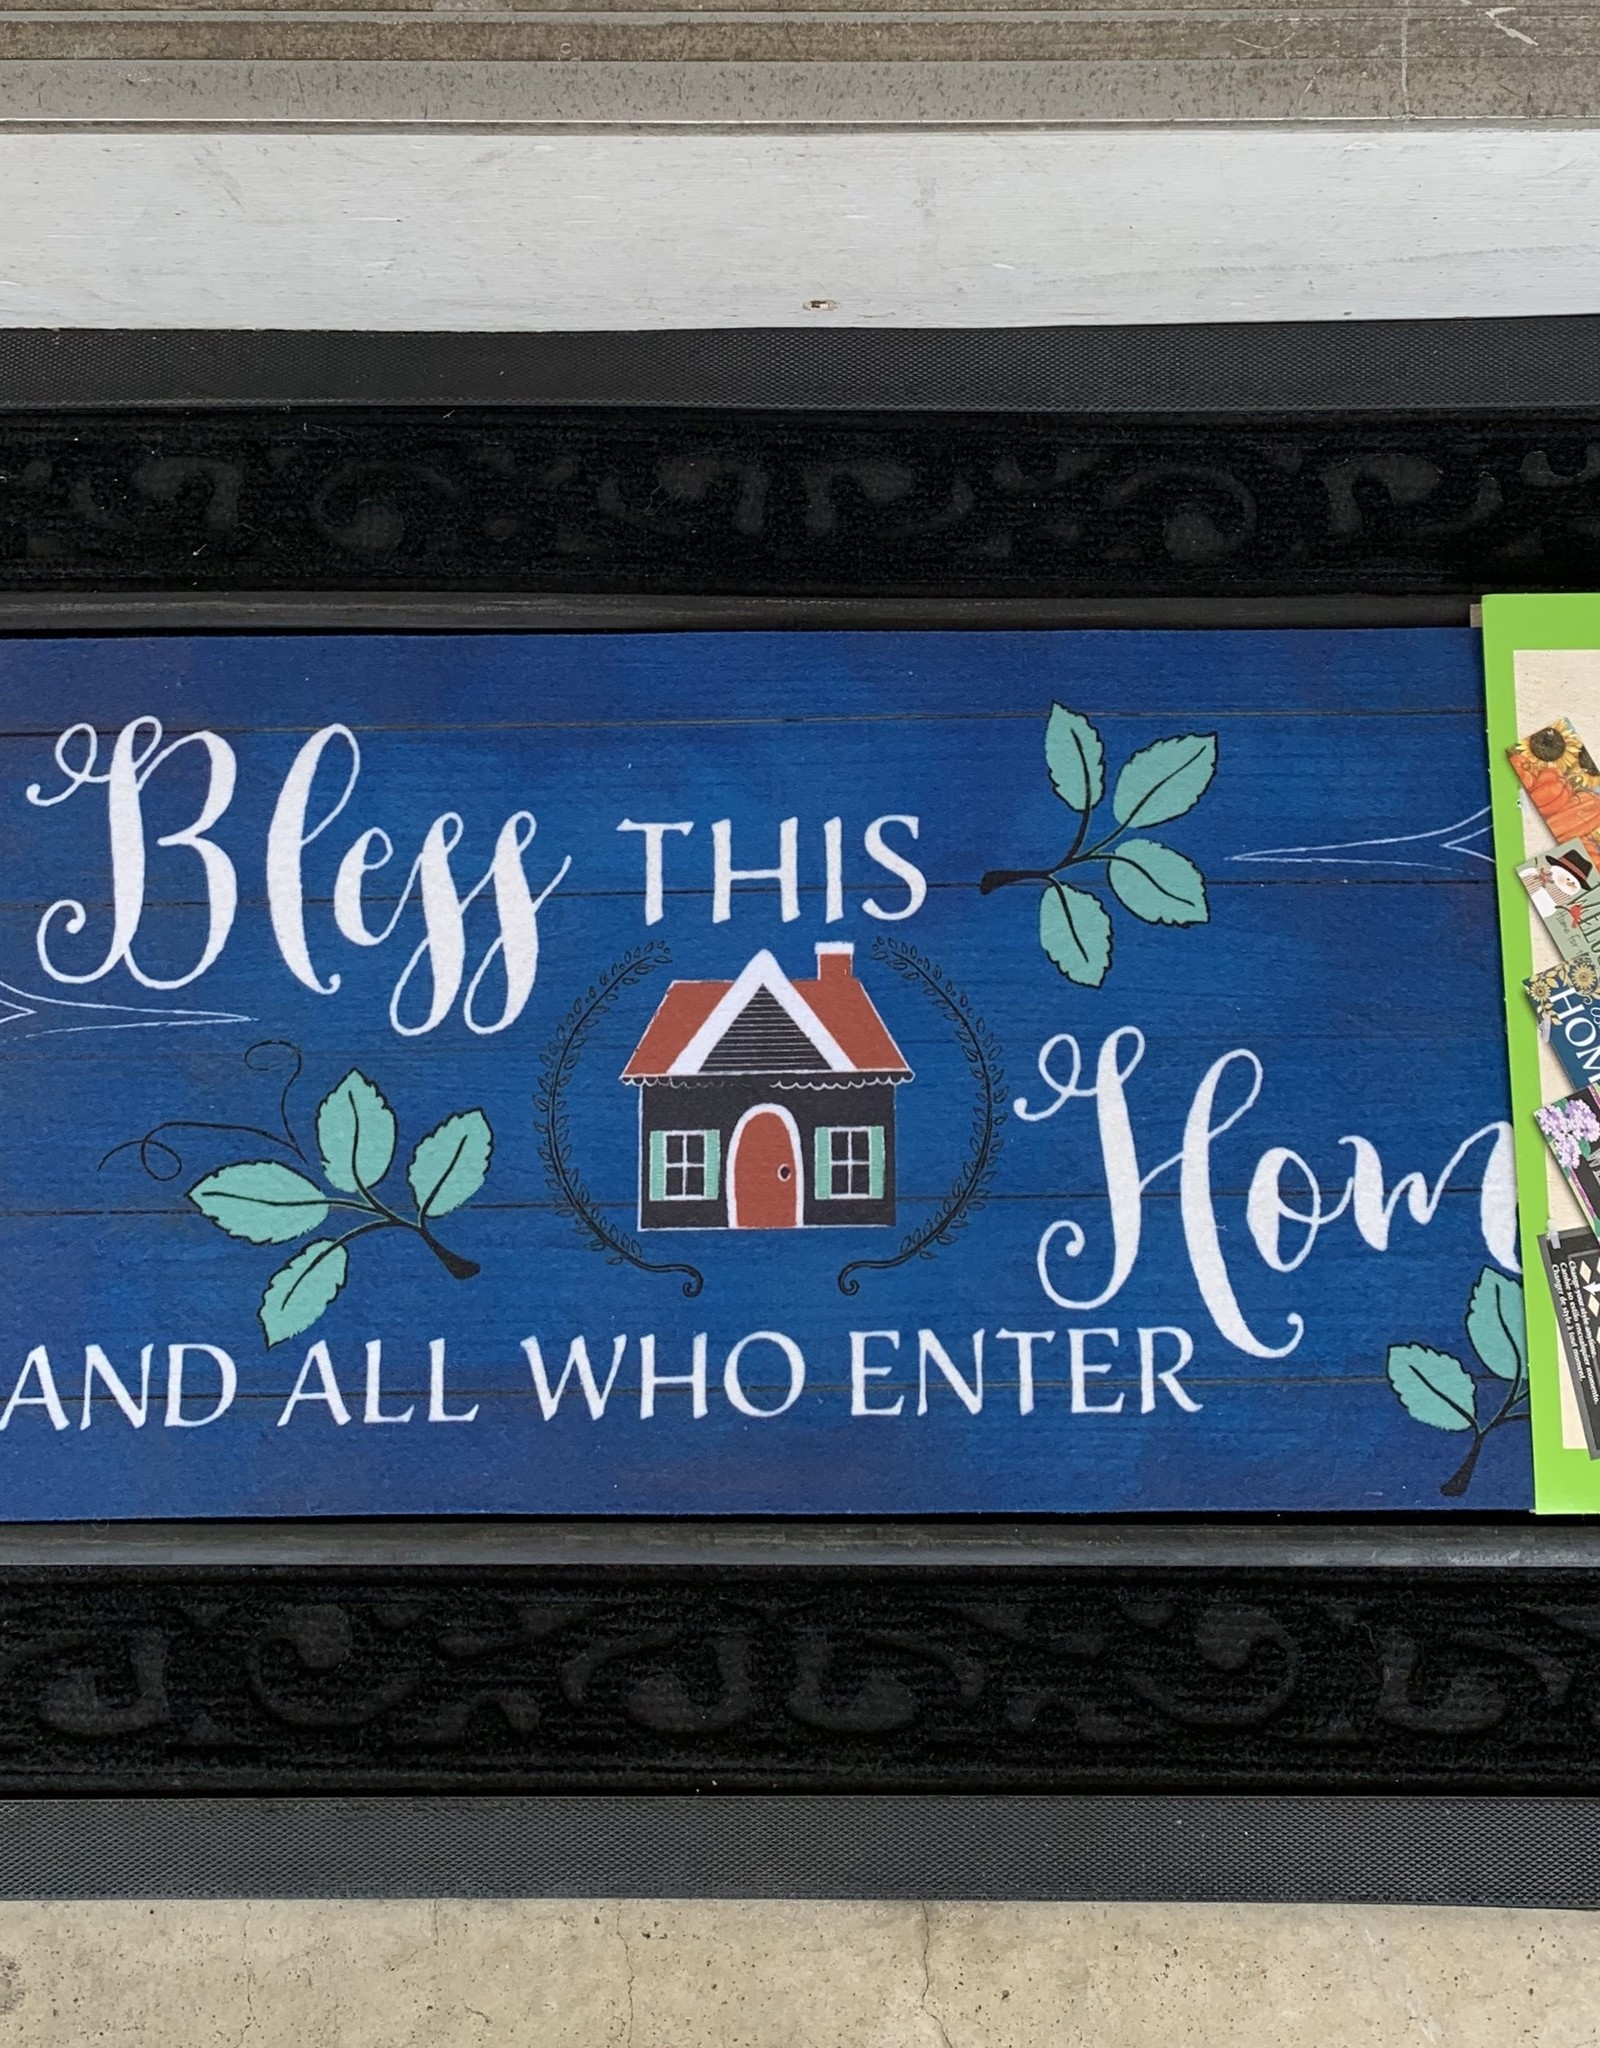 EVERGREEN ENTERPRISES, INC. BLESS THIS HOME AND ALL WHO ENTER - DOOR MAT INSERT